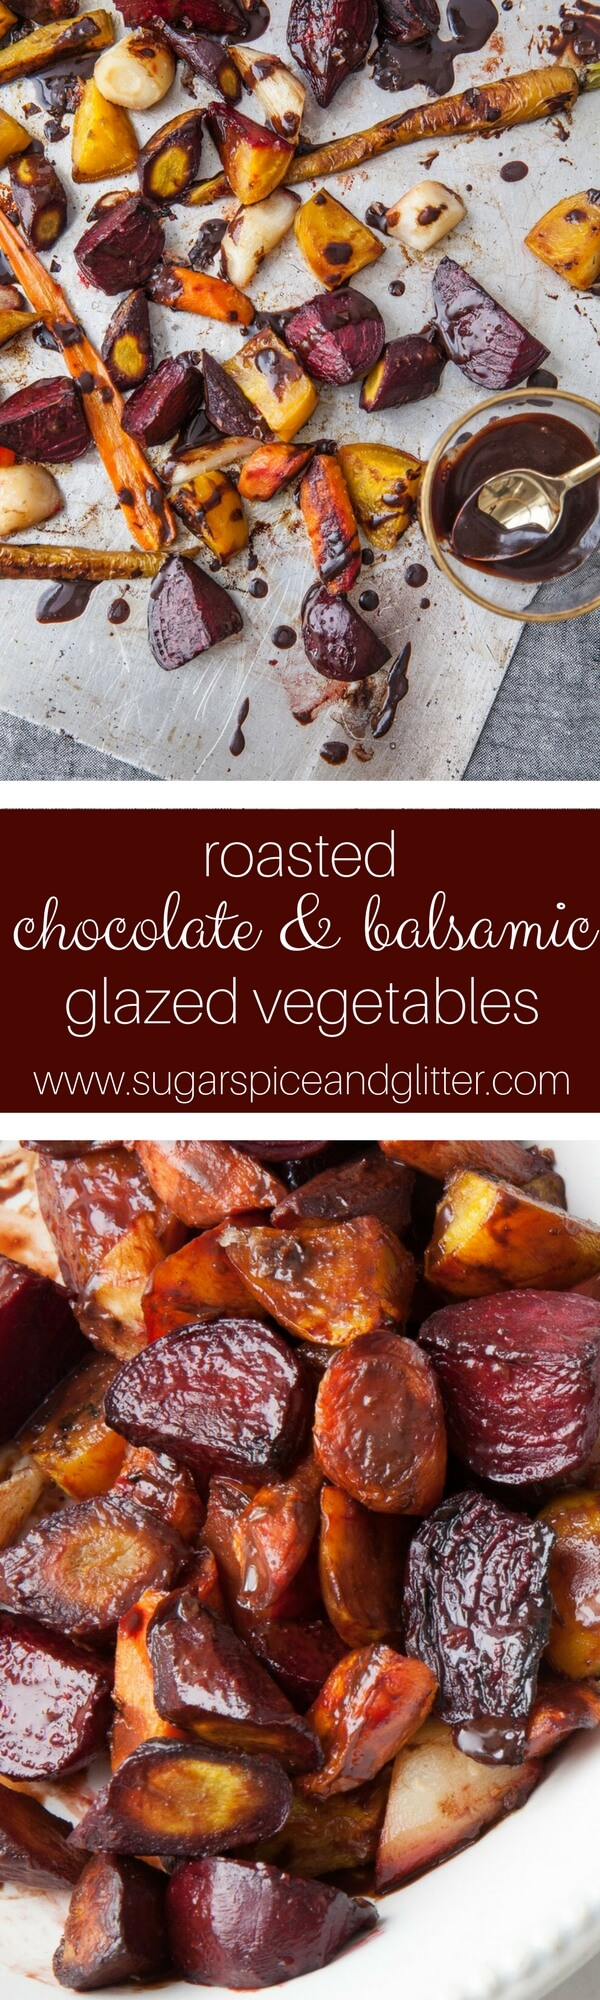 An easy roasted vegetable side dish, this Chocolate Balsamic vegetable dish is such a fun and unusual recipe for a Willy Wonka movie night or a potluck recipe that will get everyone talking